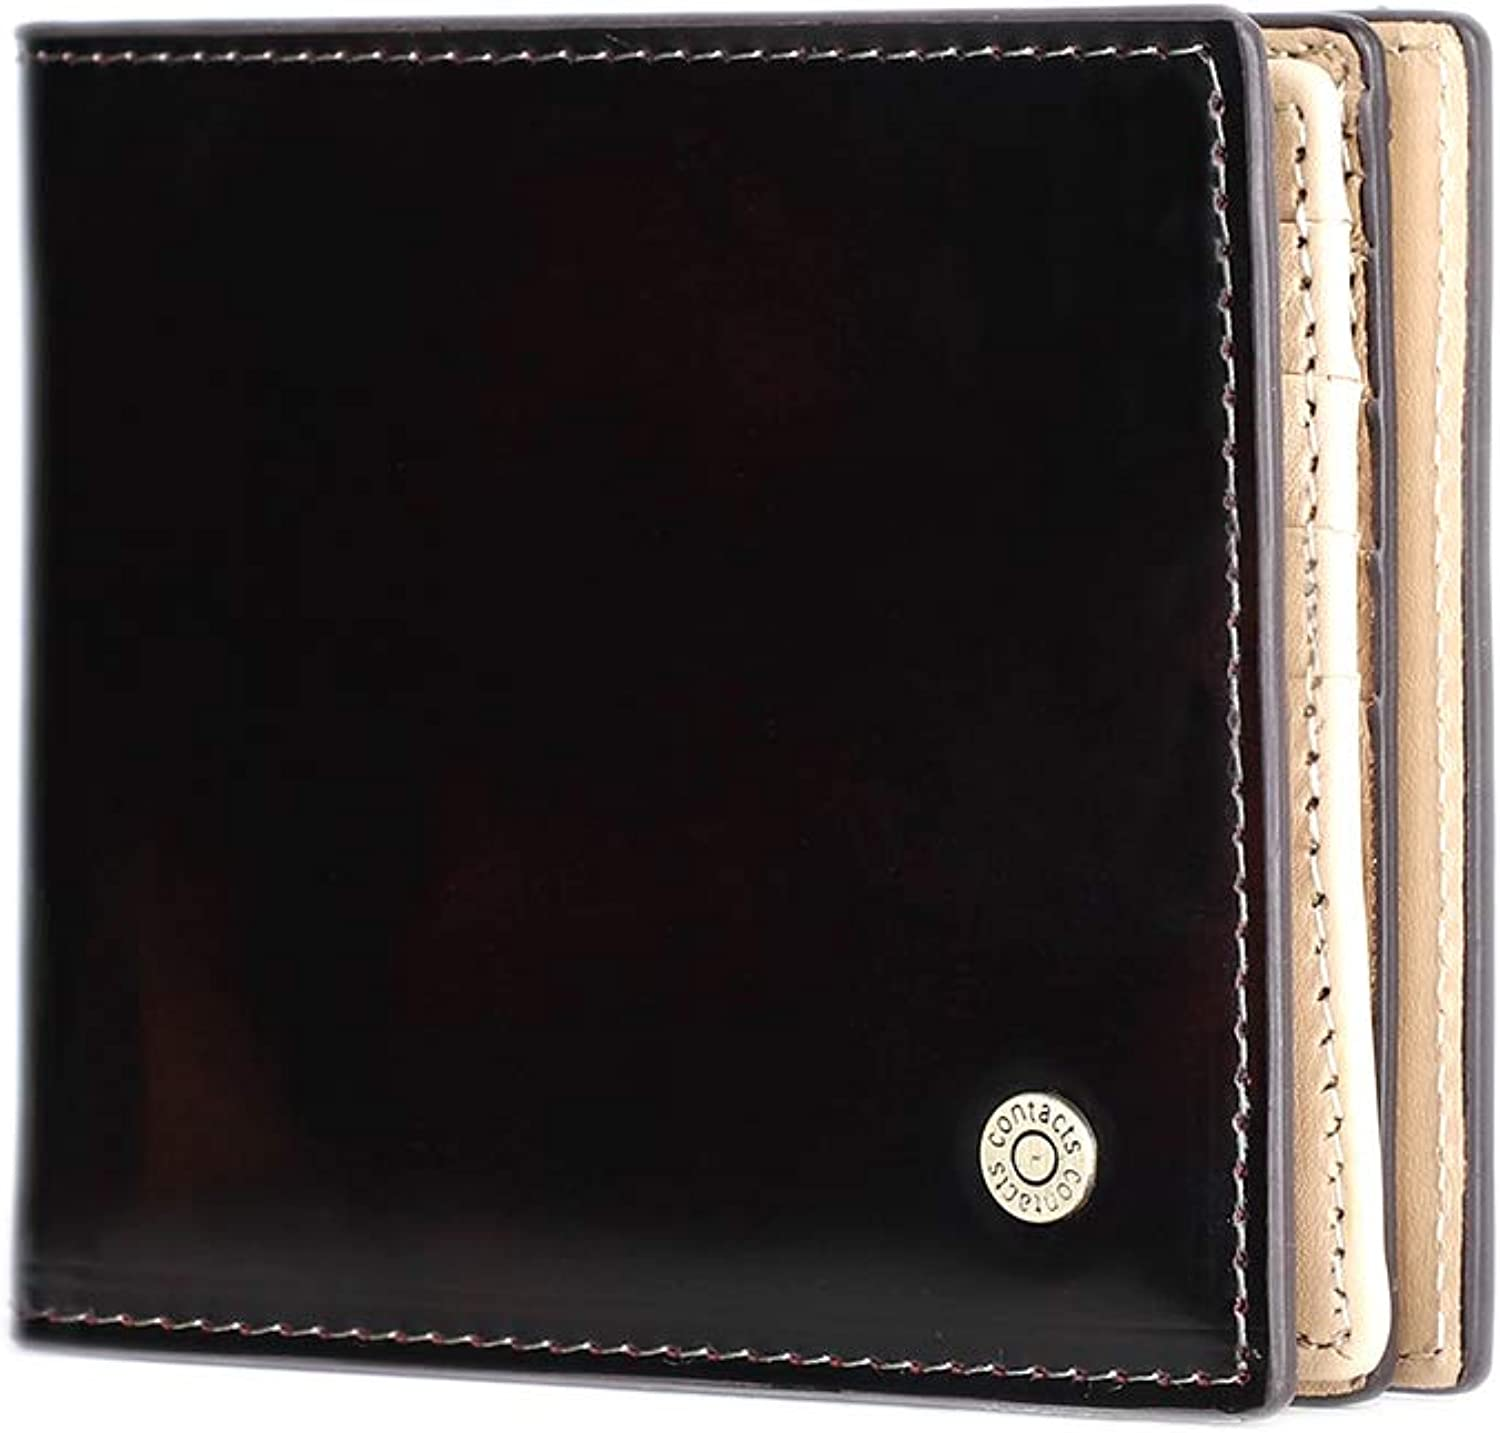 CONTACT'S-Mens RFID Blocking Bifold Card Wallet With snap, Slim Genuine Leather Coin Pouch Black